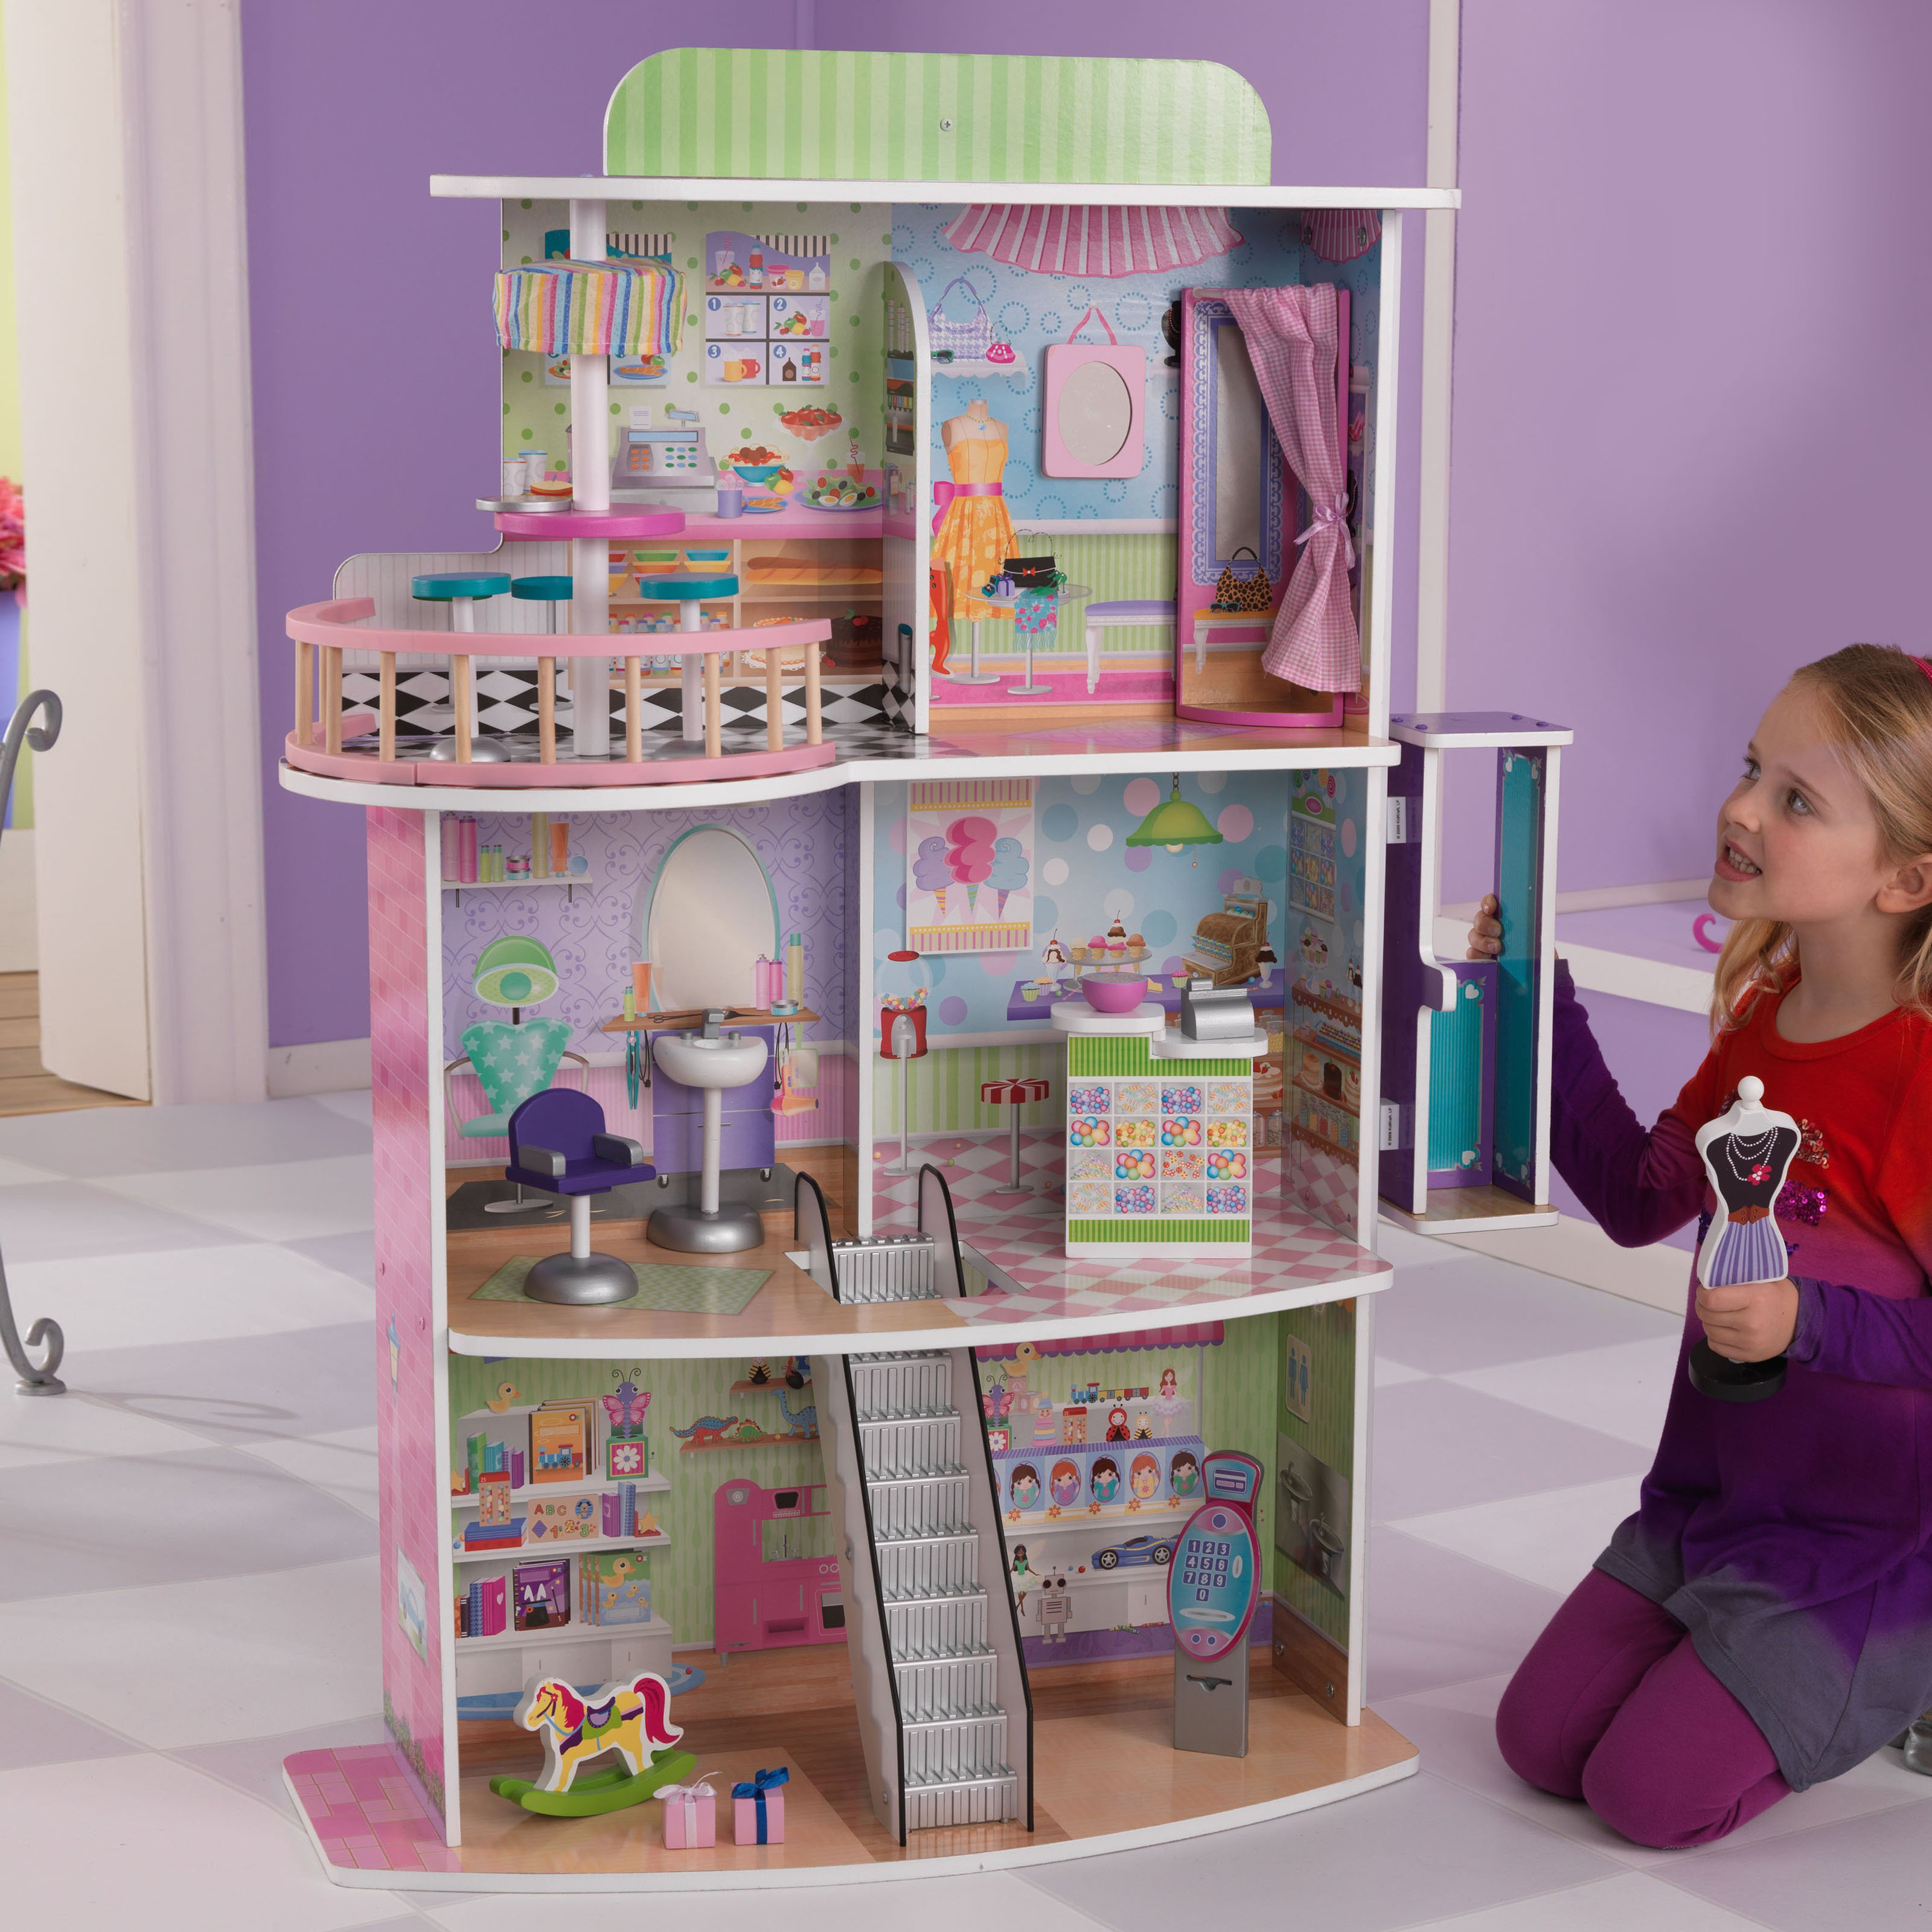 KidKraft Dolls Shopping Center - 65282